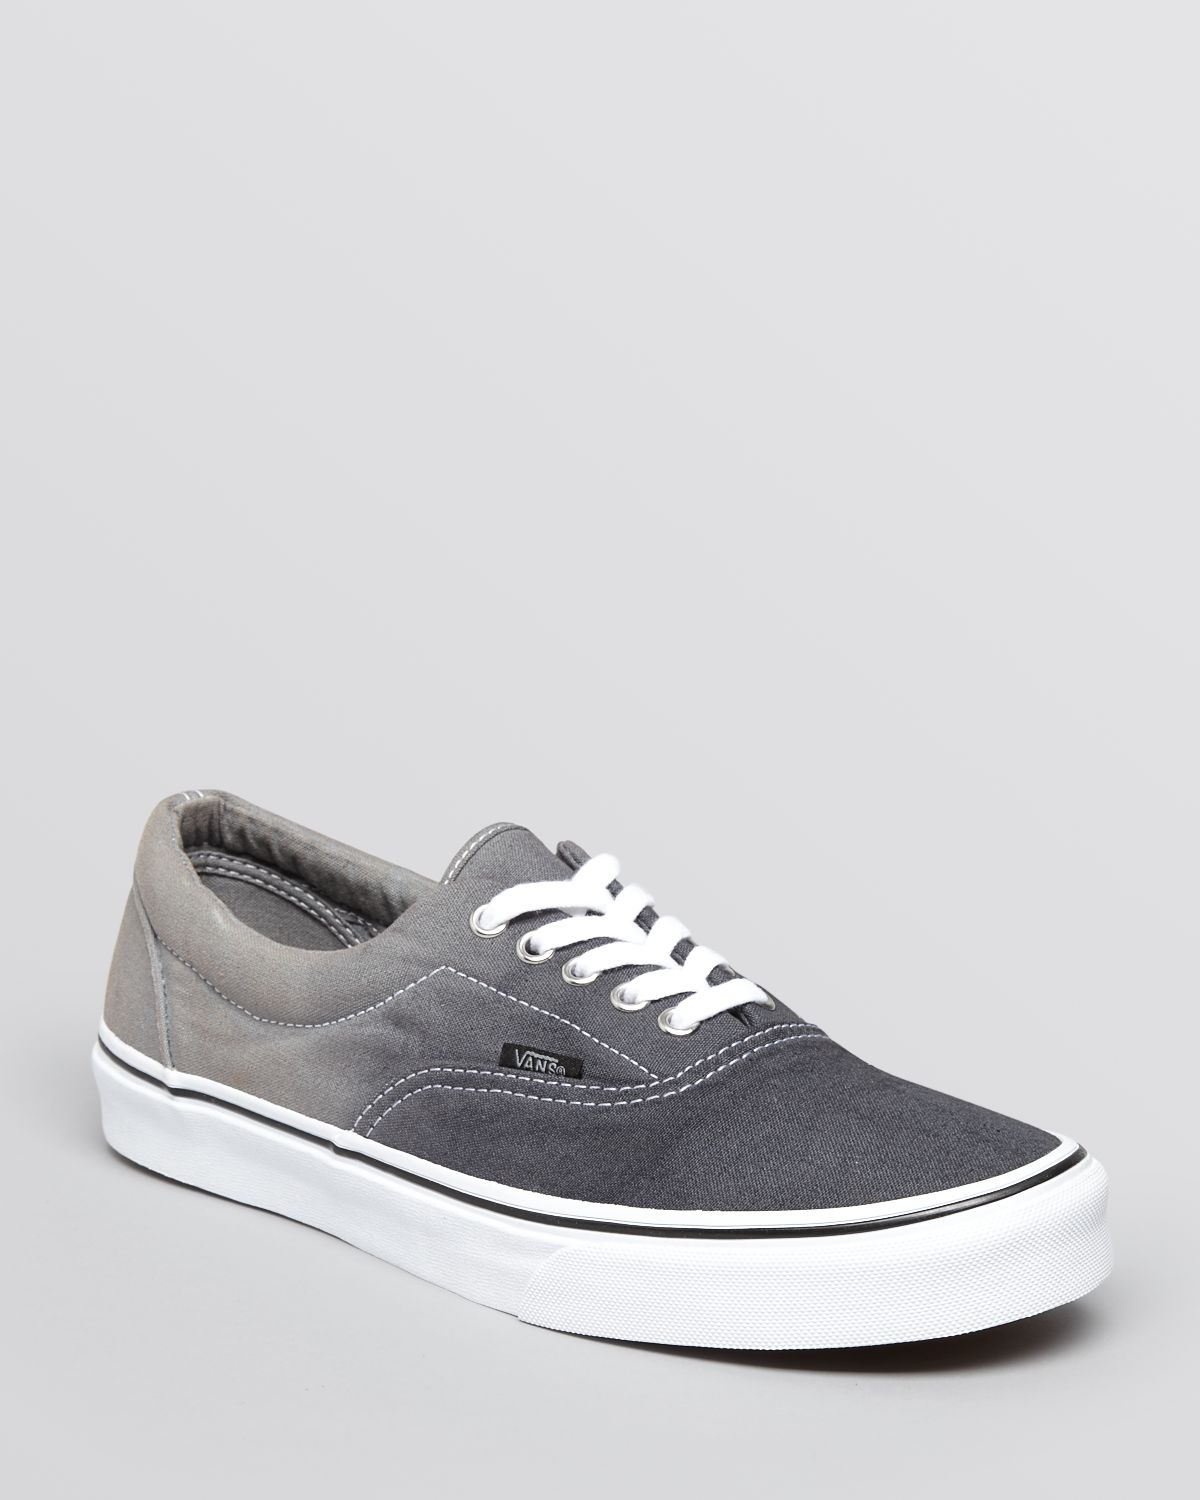 Lyst - Vans Era Ombre Sneakers in Gray for Men 9a40a1d48